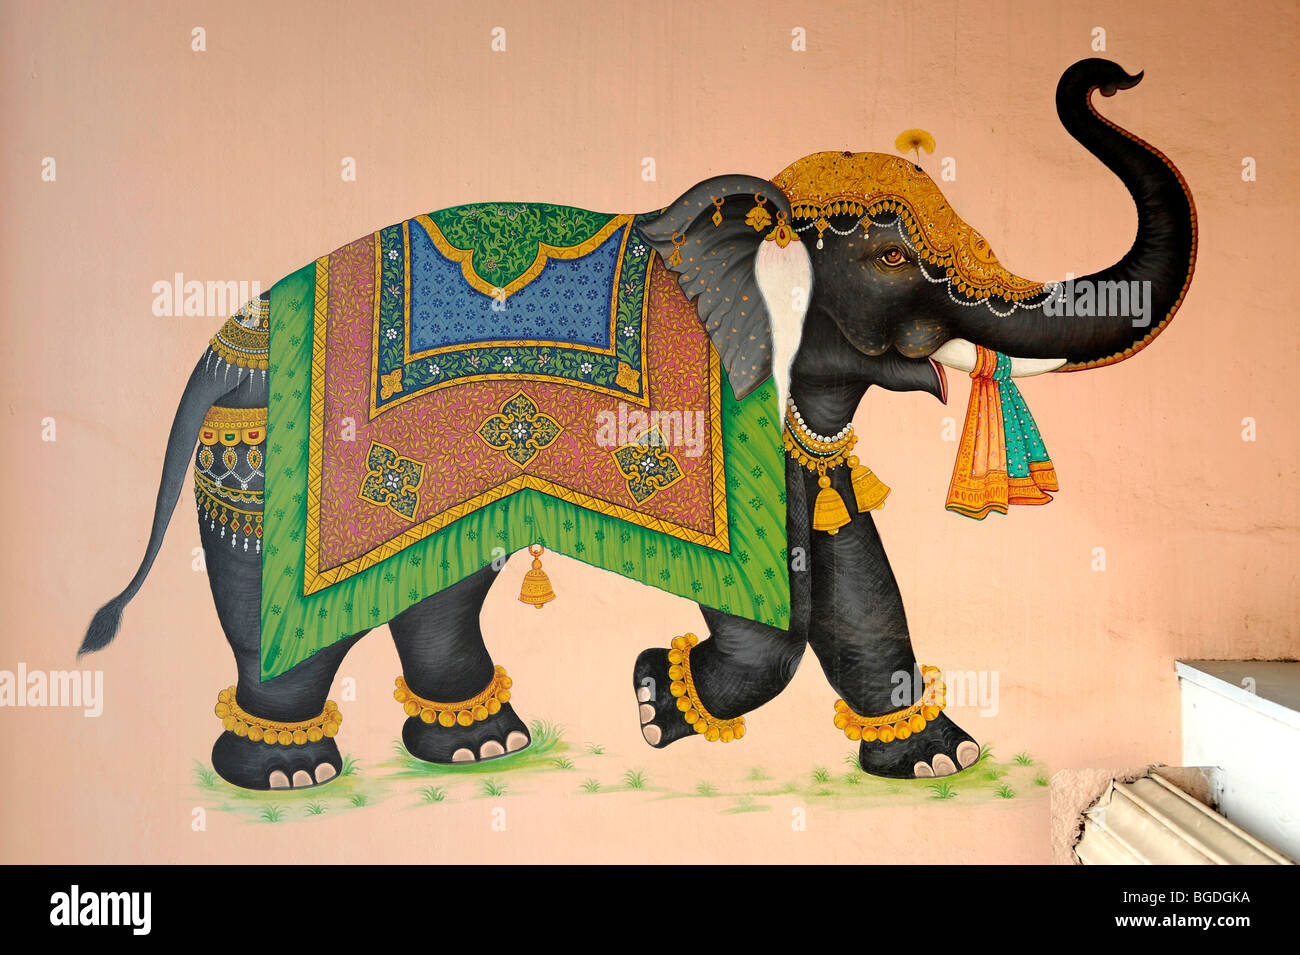 Mural of a decorated elephant, Jaipur, Rajasthan, North India, India, South Asia, Asia Stock Photo